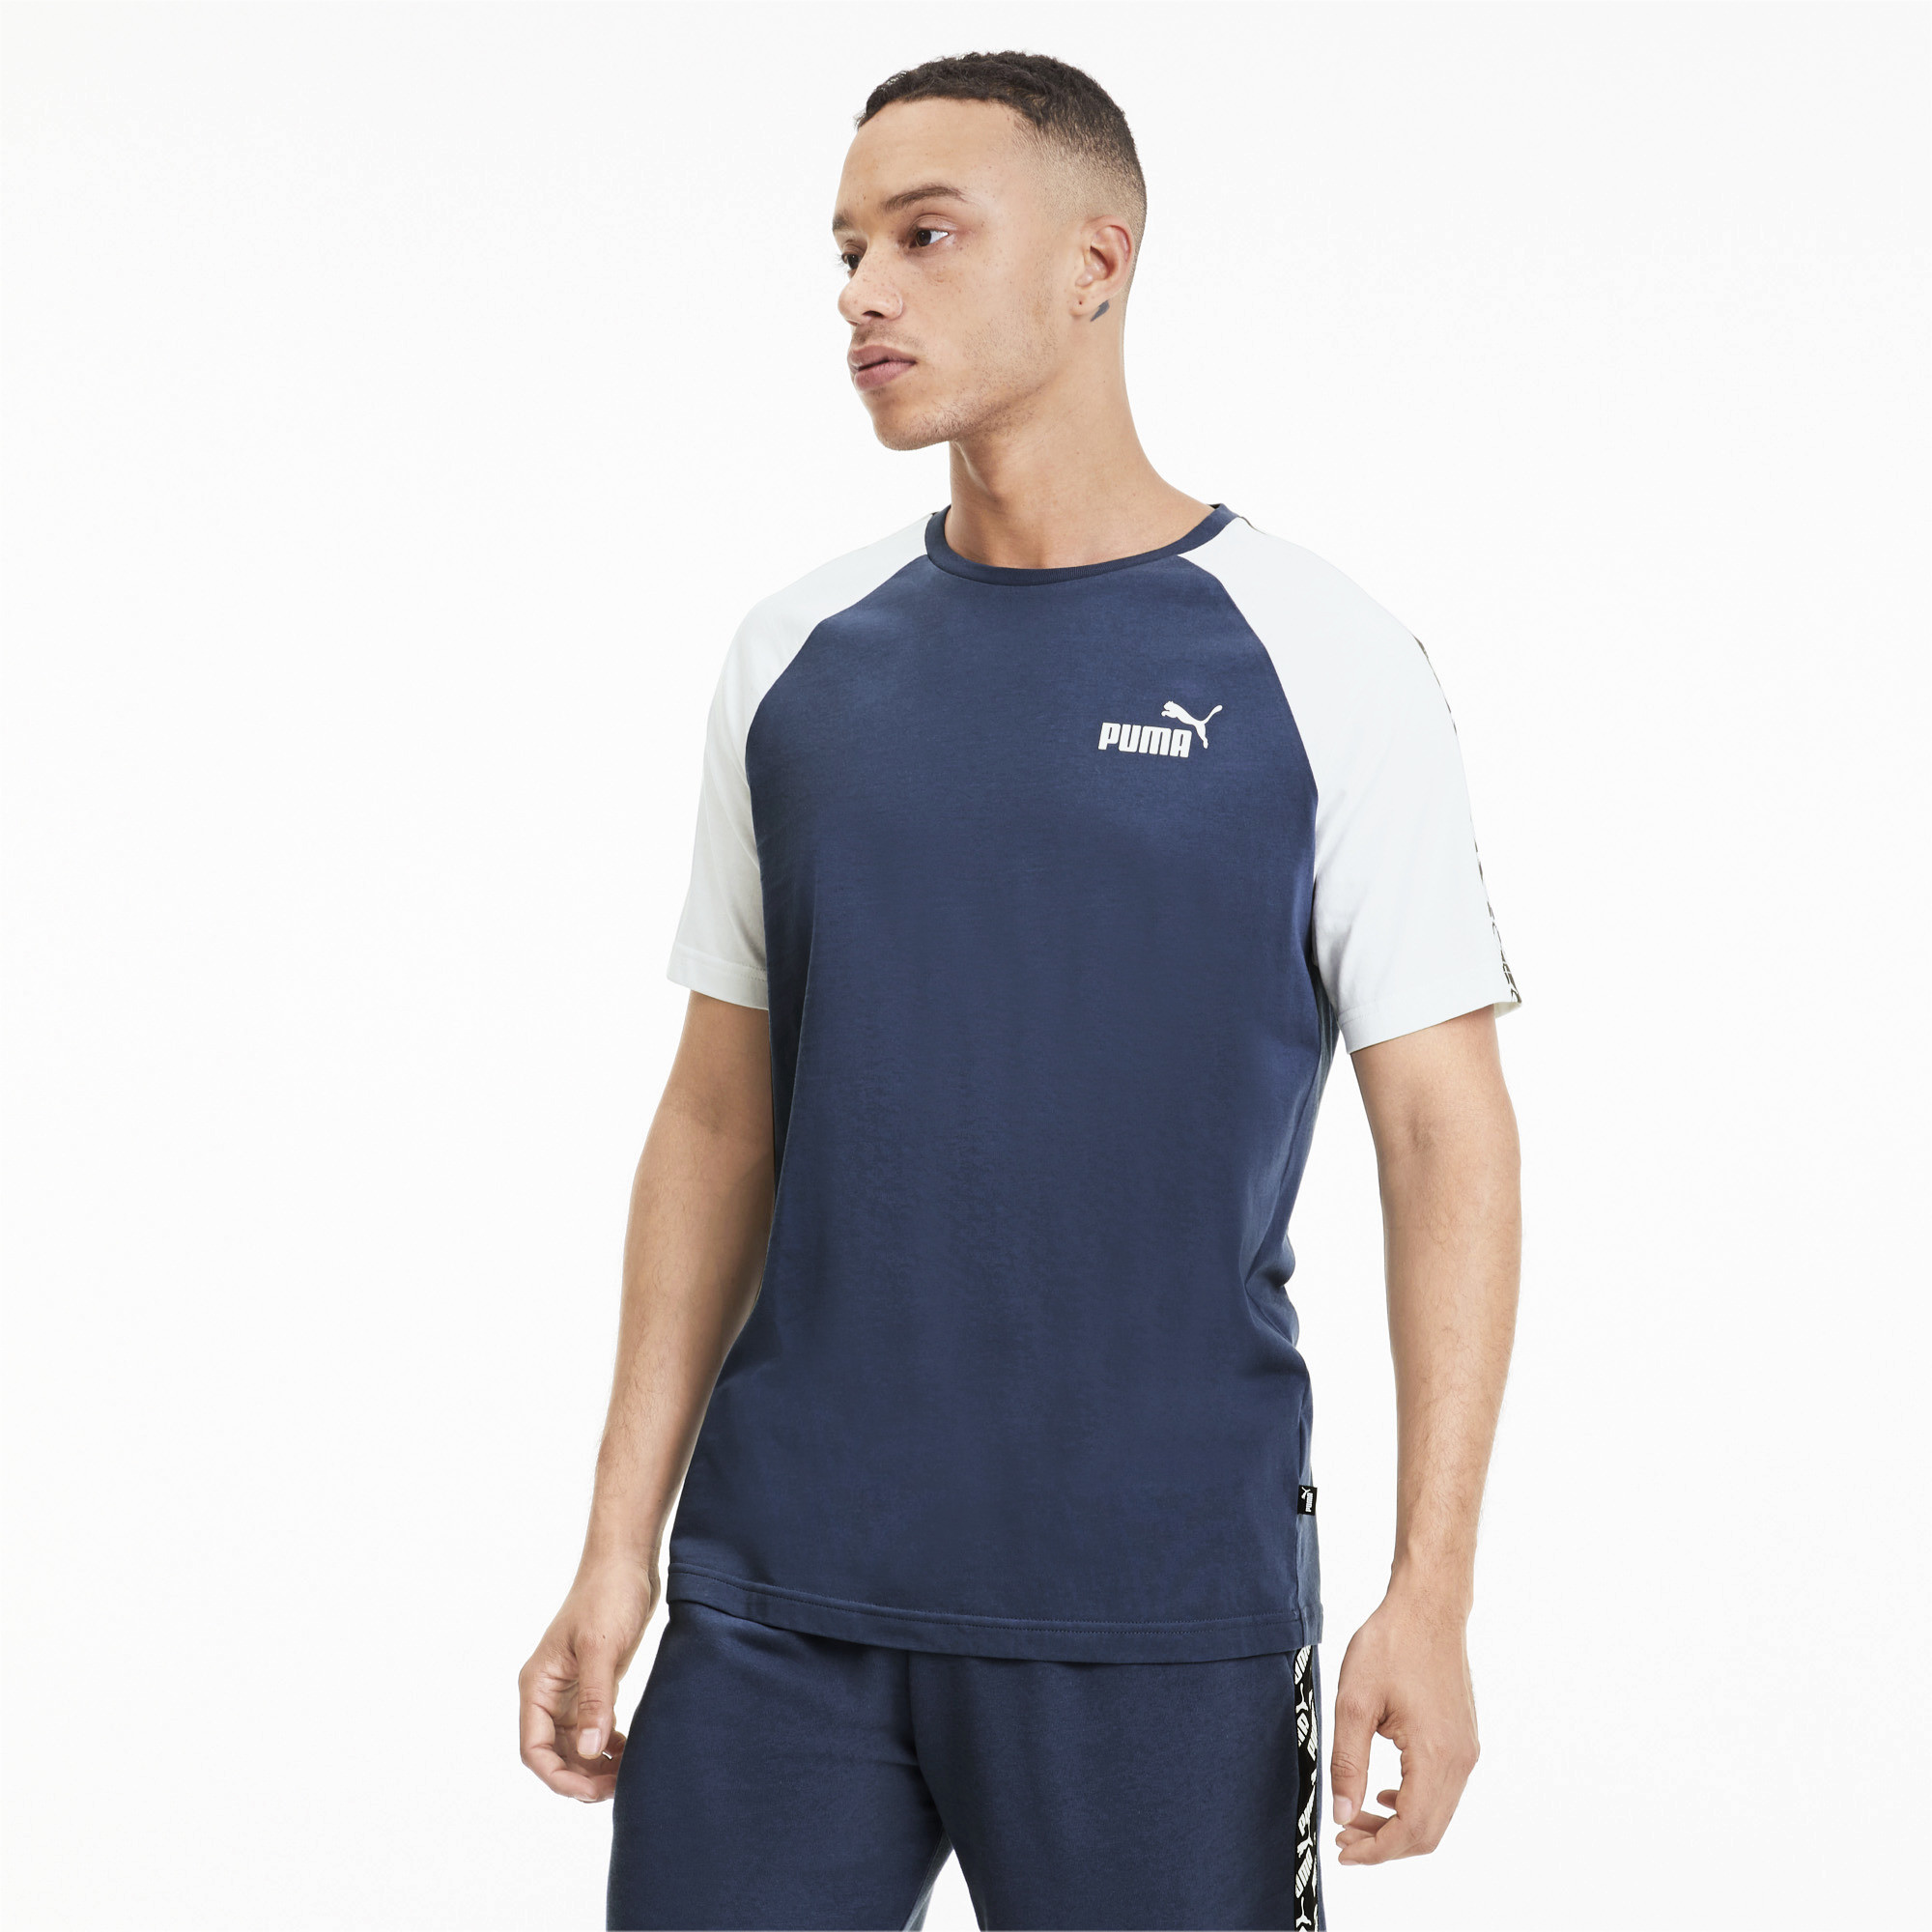 PUMA-Amplified-Men-039-s-Raglan-Tee-Men-Tee-Basics thumbnail 16